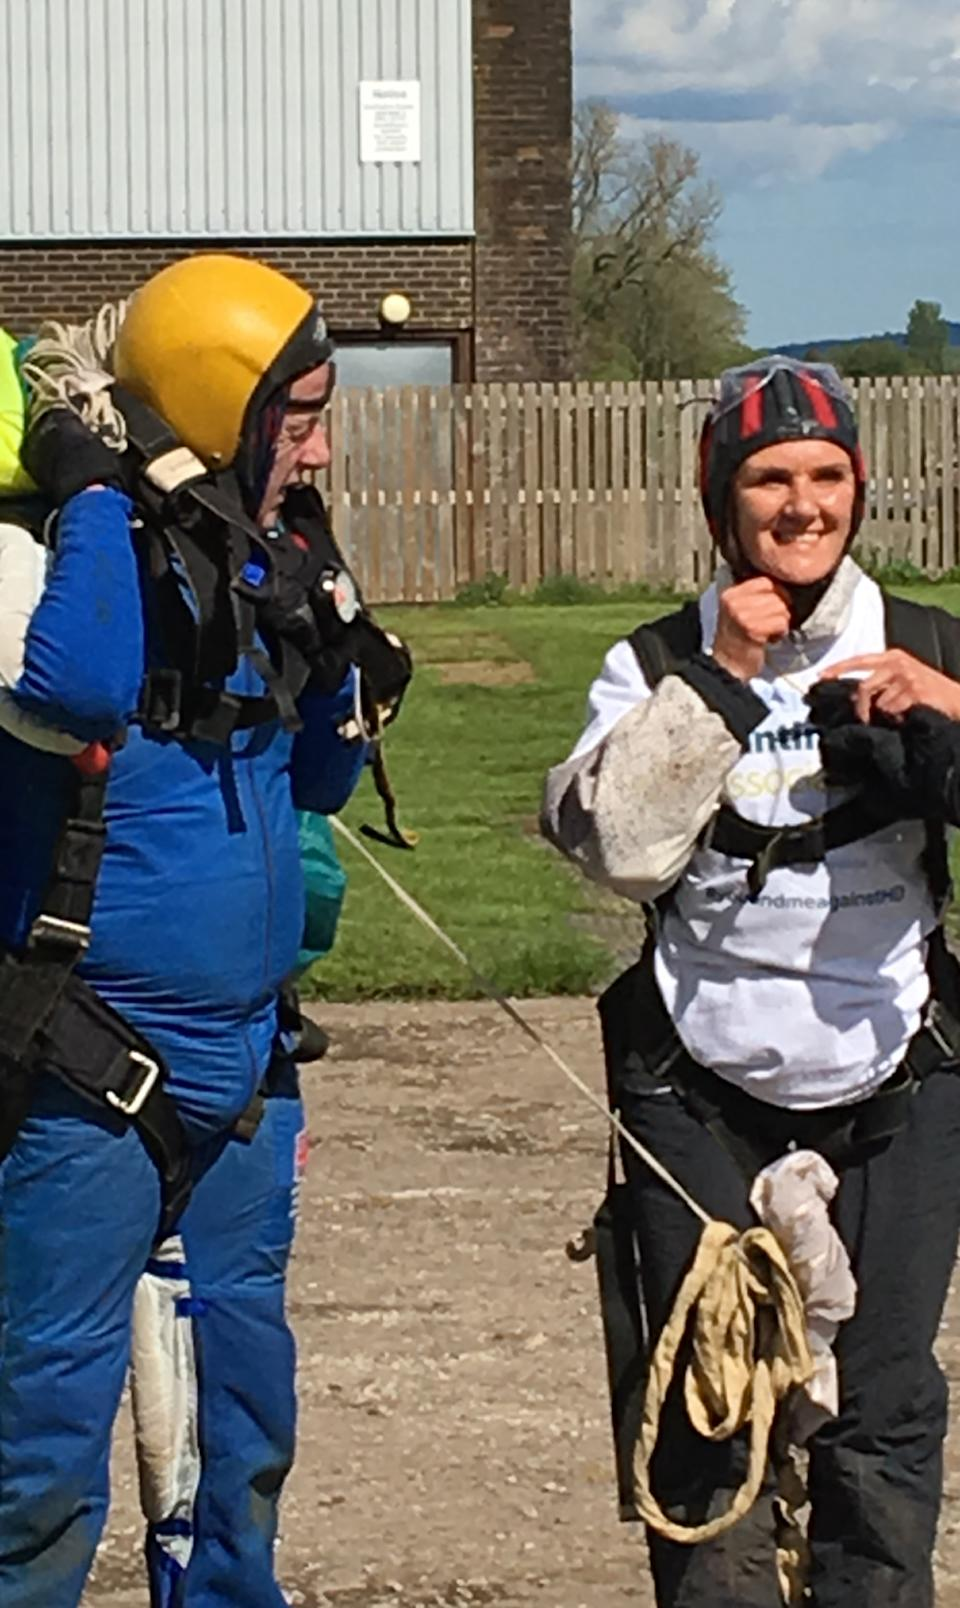 Gillian raised £6,000 for charity during her skydive. (Collect/PA Real Life)